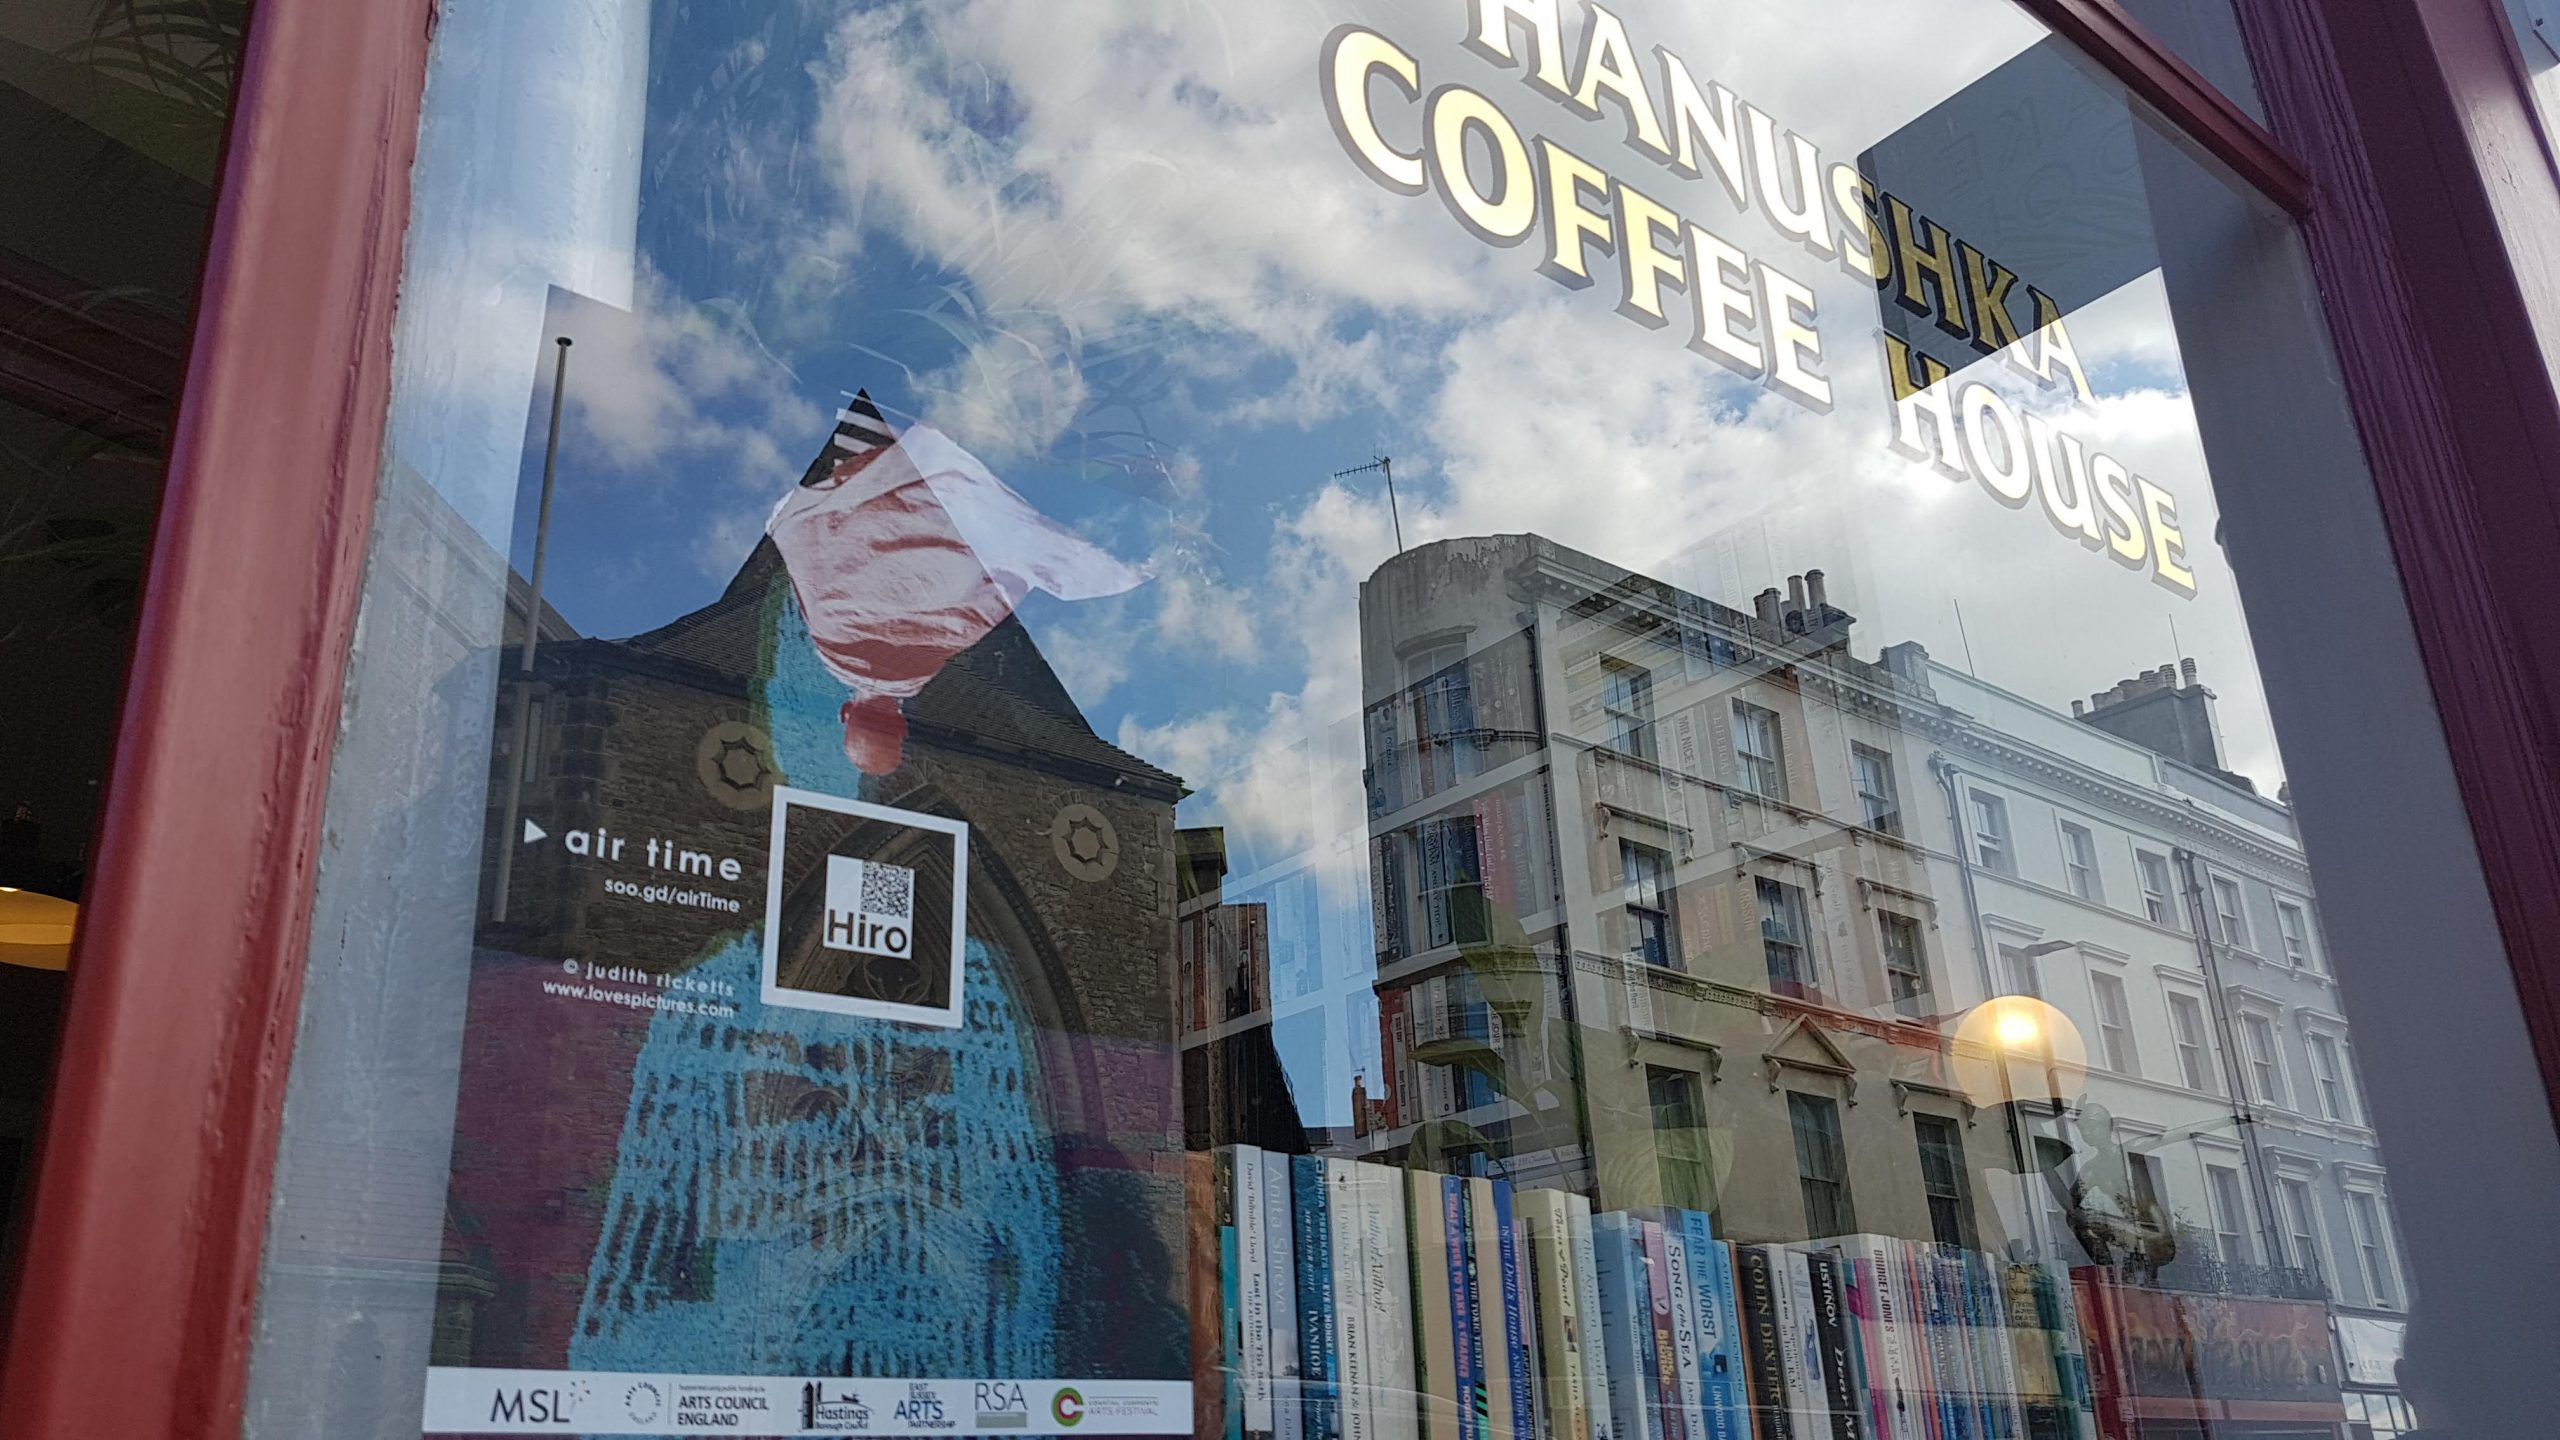 Air Time poster in Hanushka Coffe House window Hastings